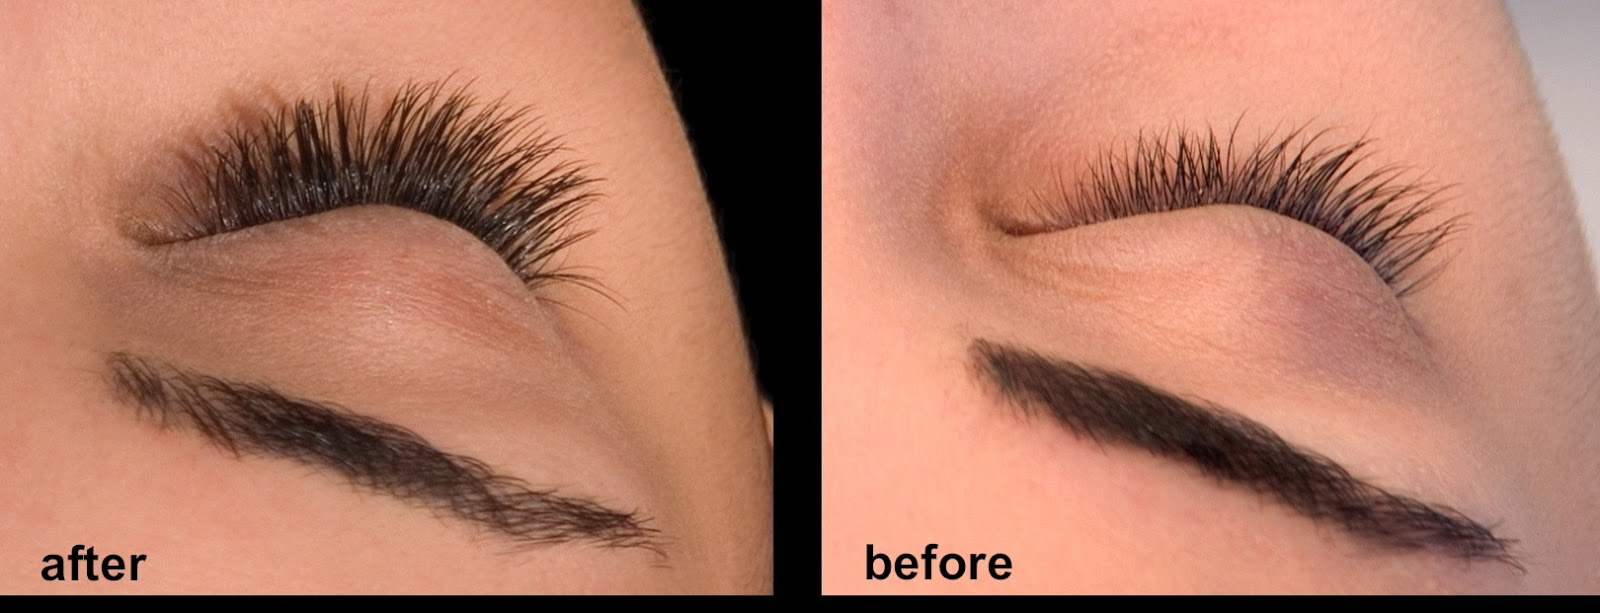 Make Me Beautiful Novalash An Innovation In Eyelash Extensions